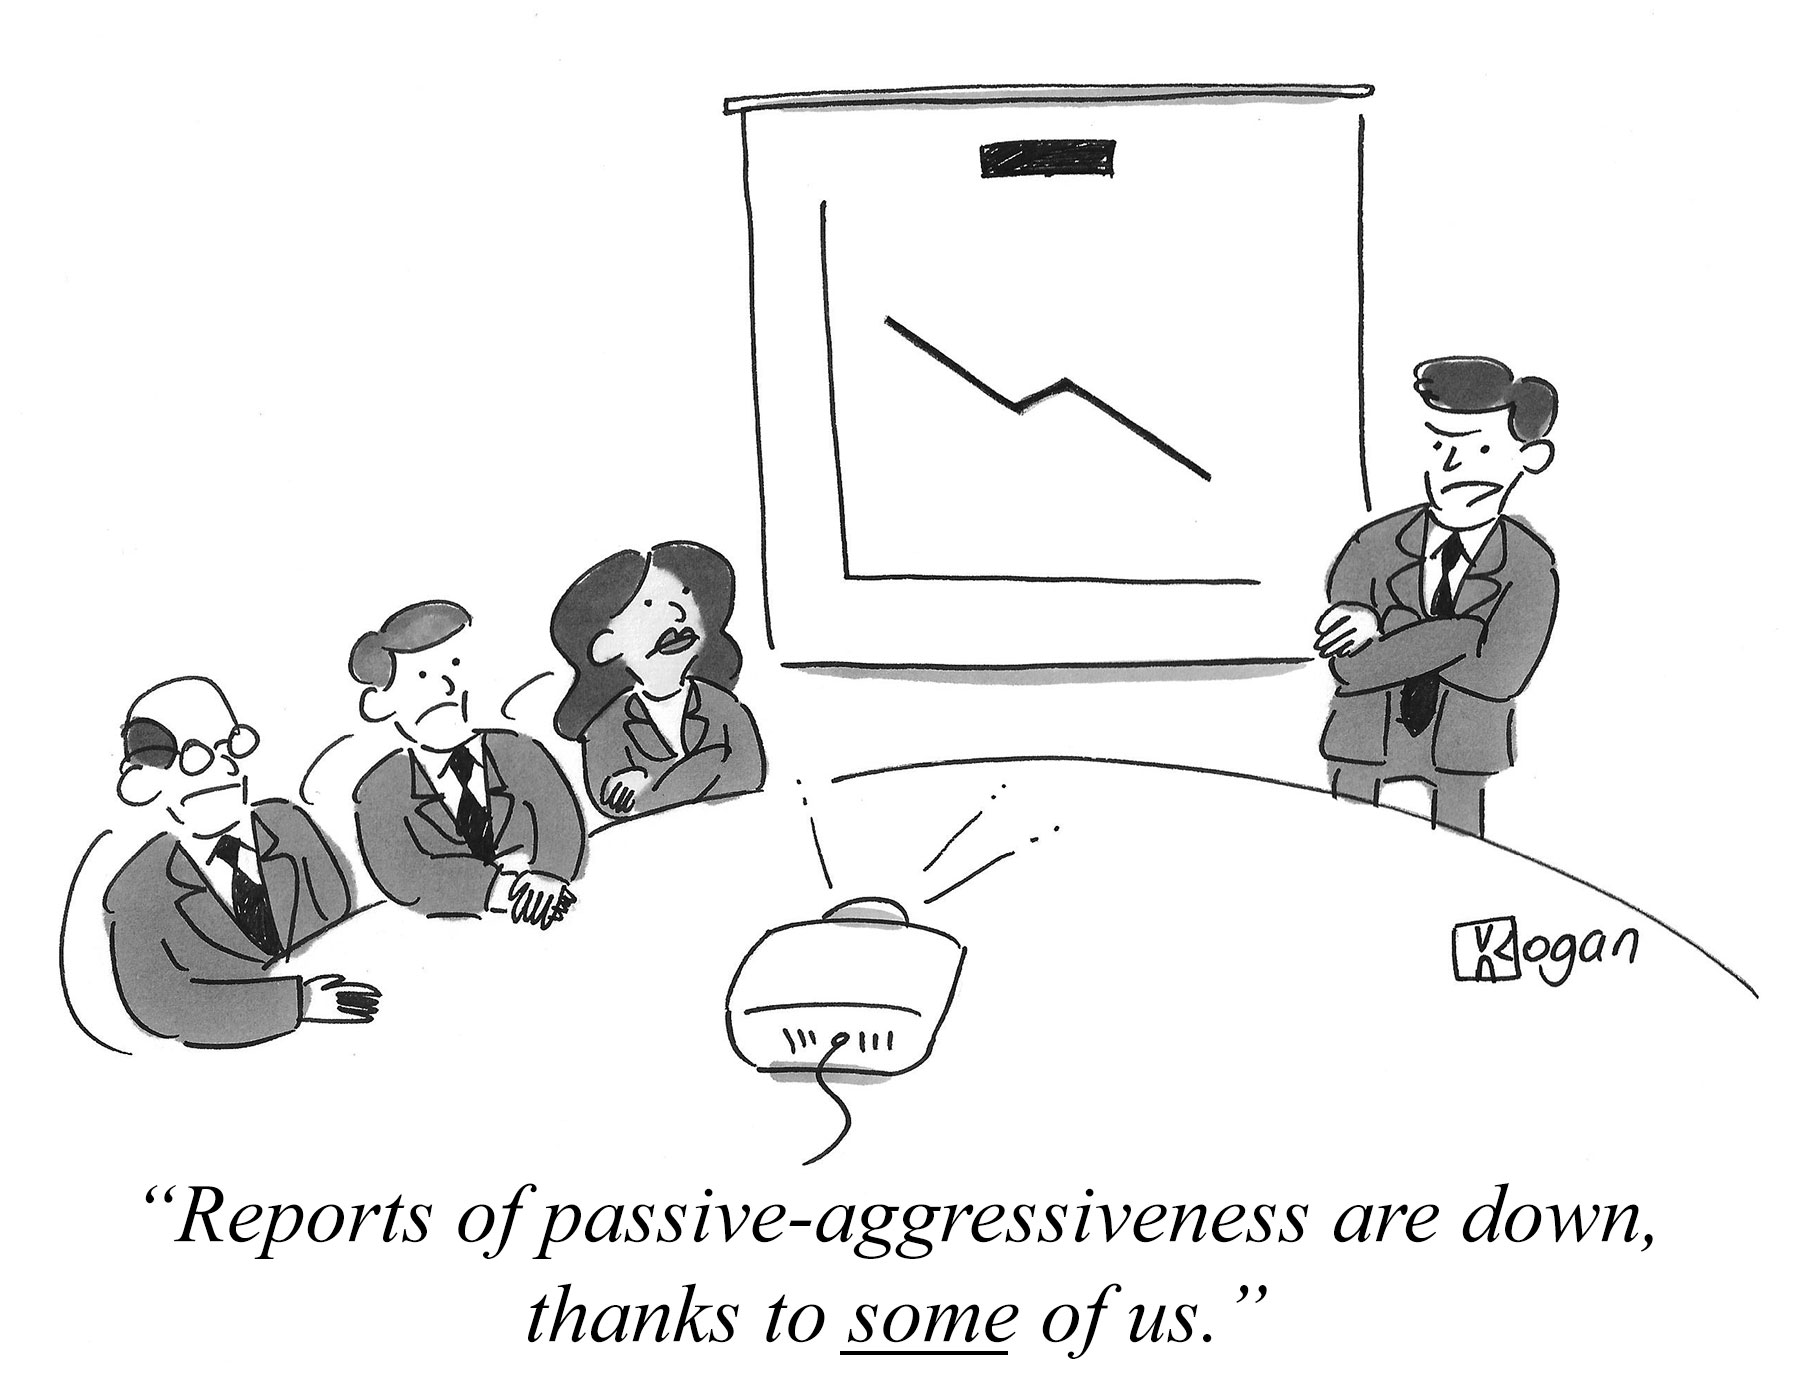 Reports of passive-aggressiveness are down, thanks to some of us.